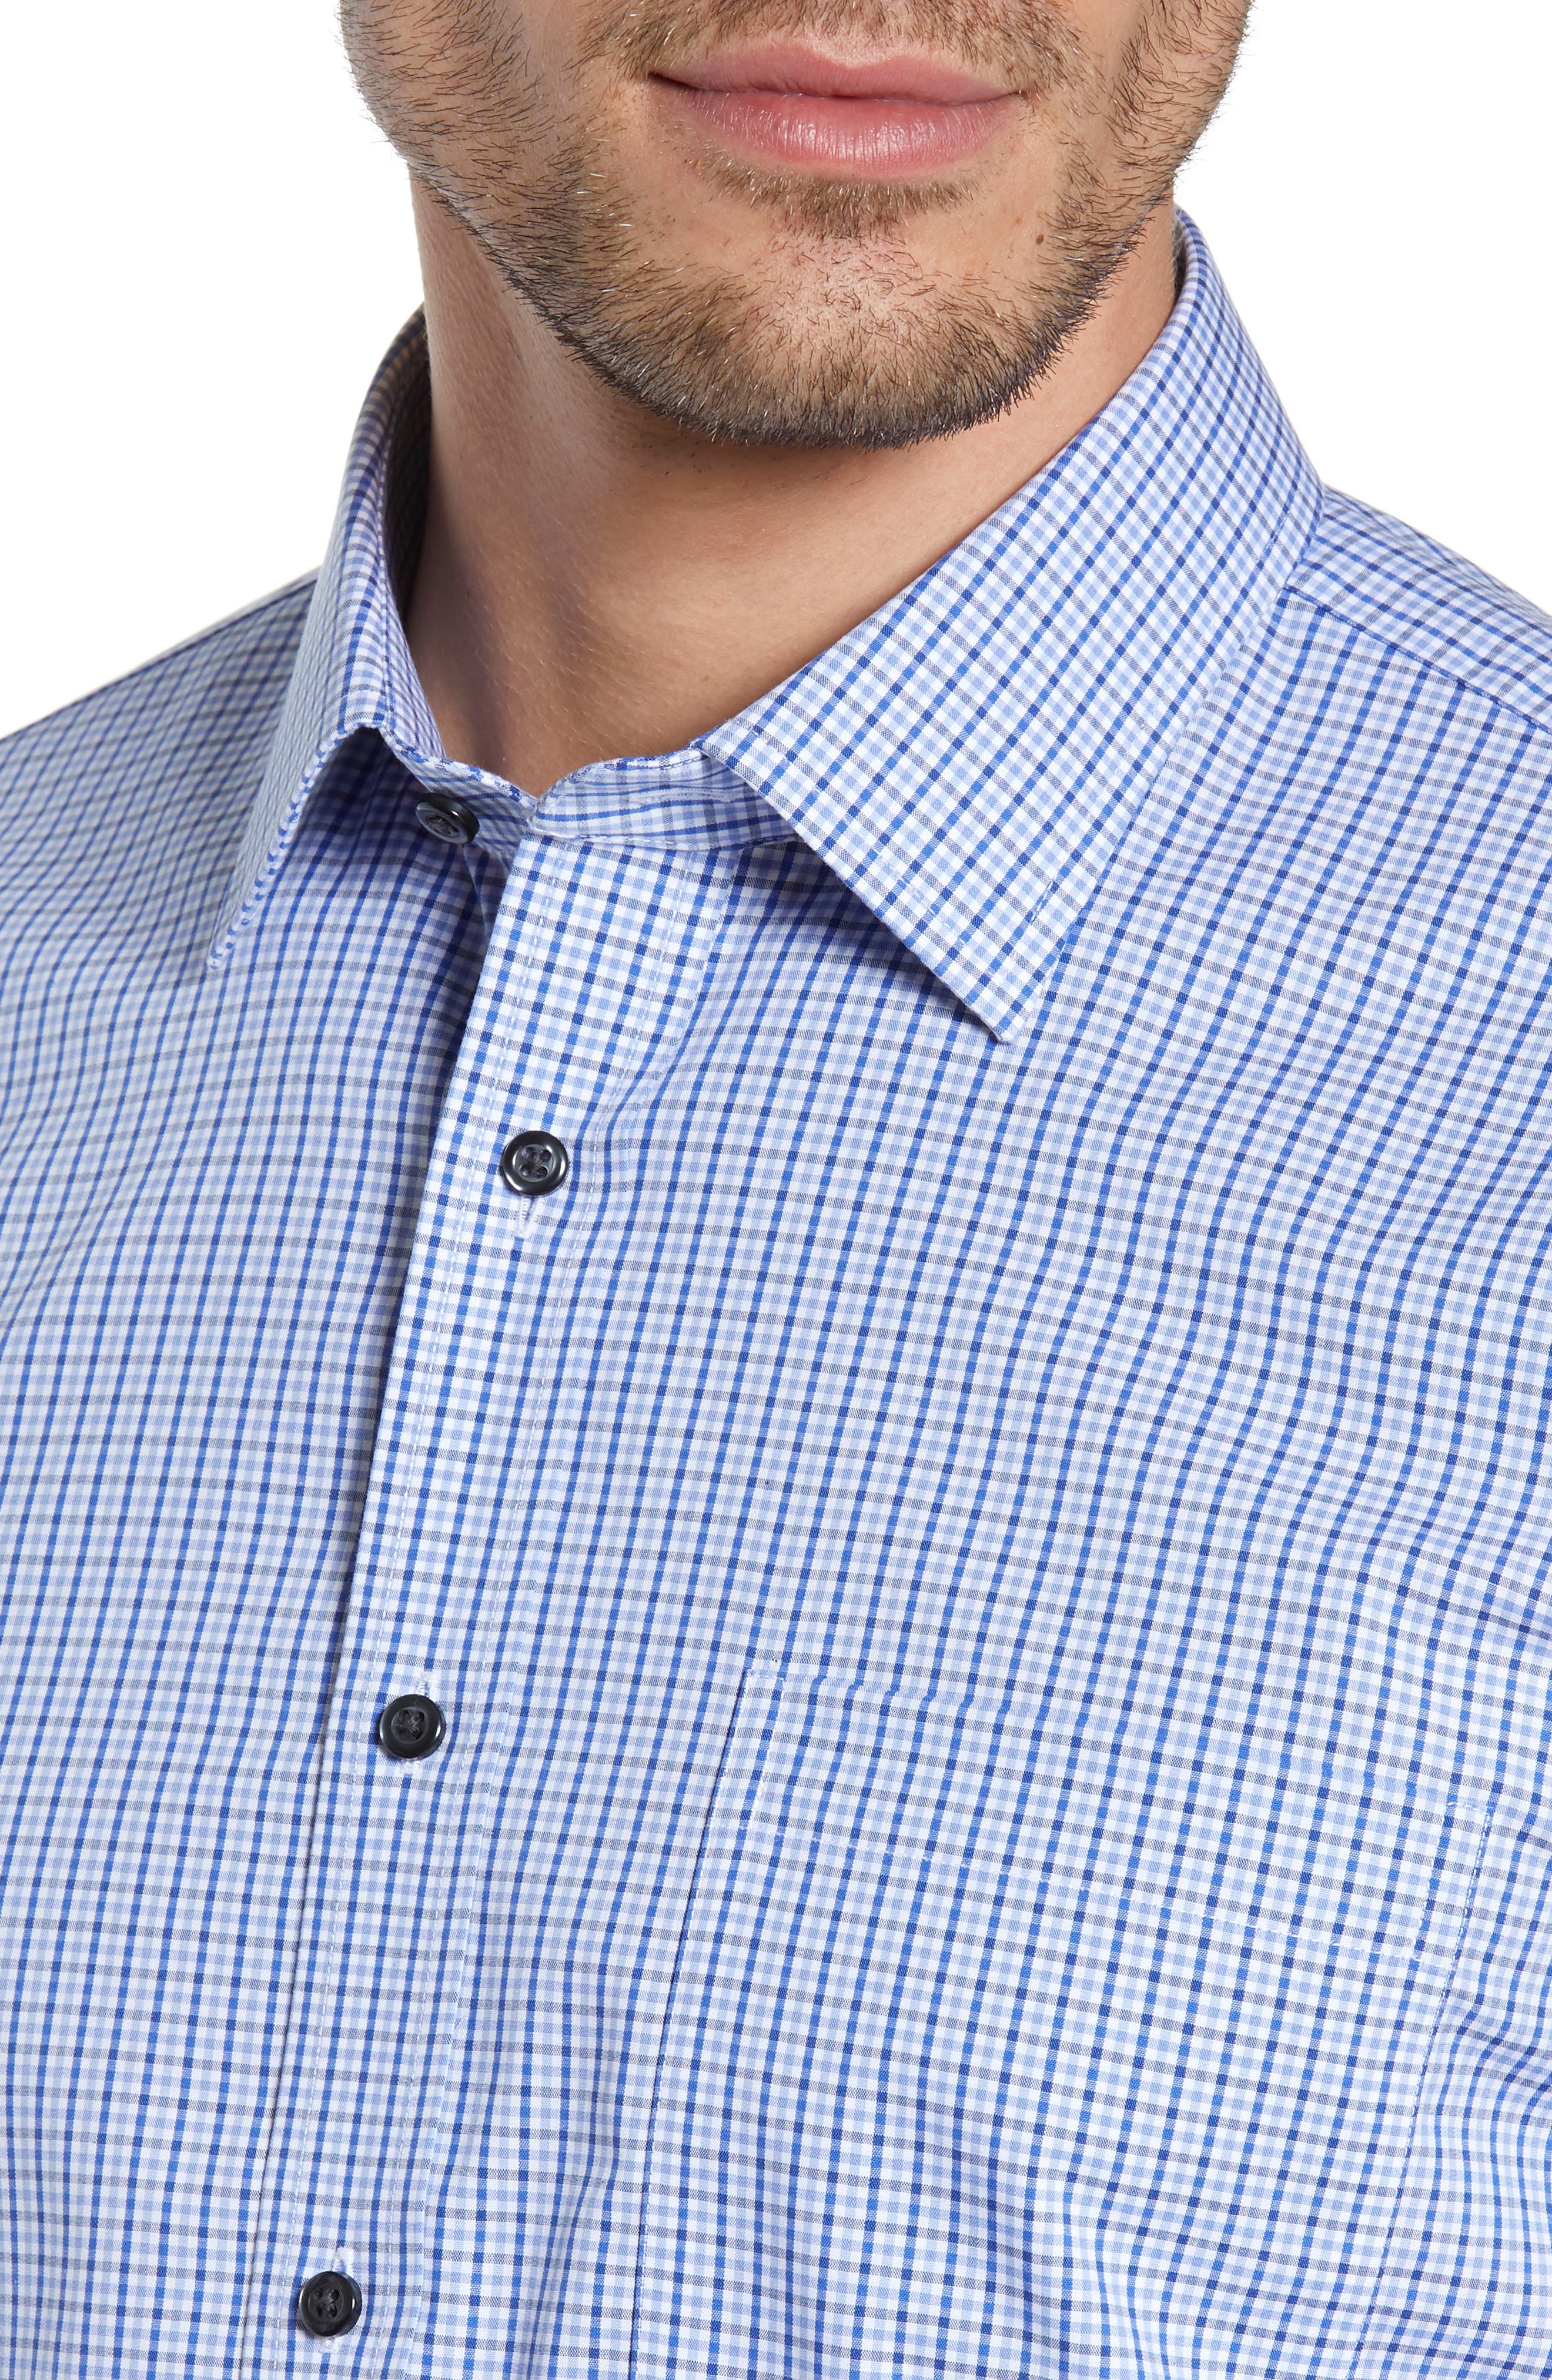 NORDSTROM MEN'S SHOP, Traditional Fit Non-Iron Check Dress Shirt, Alternate thumbnail 2, color, BLUE MARINE